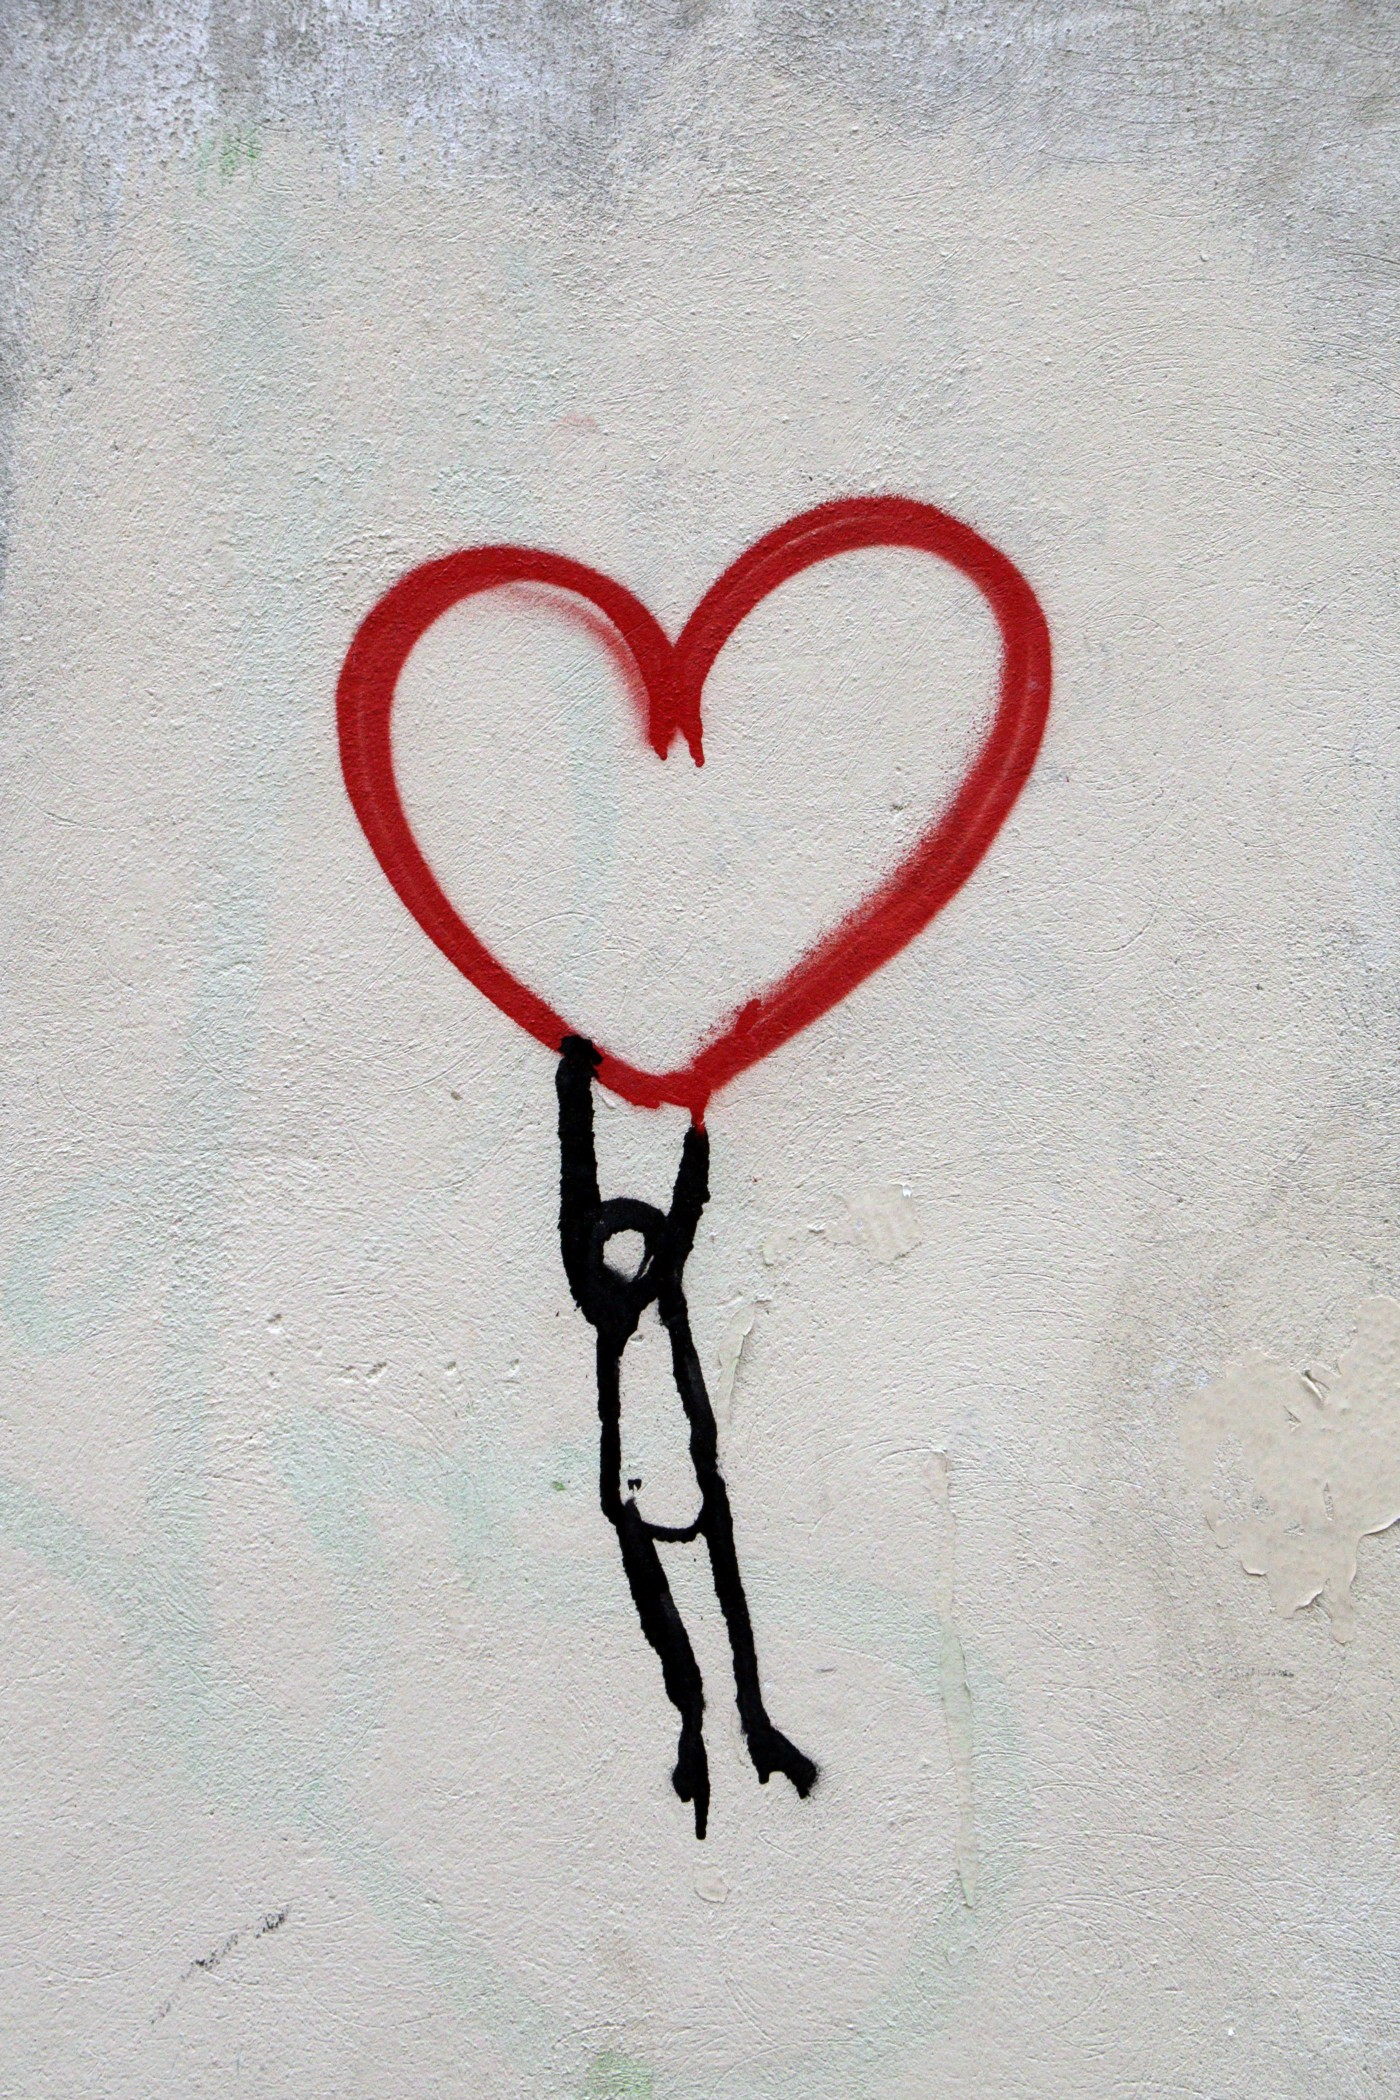 Image of graffiti—red love heart with black stick figure hanging off.